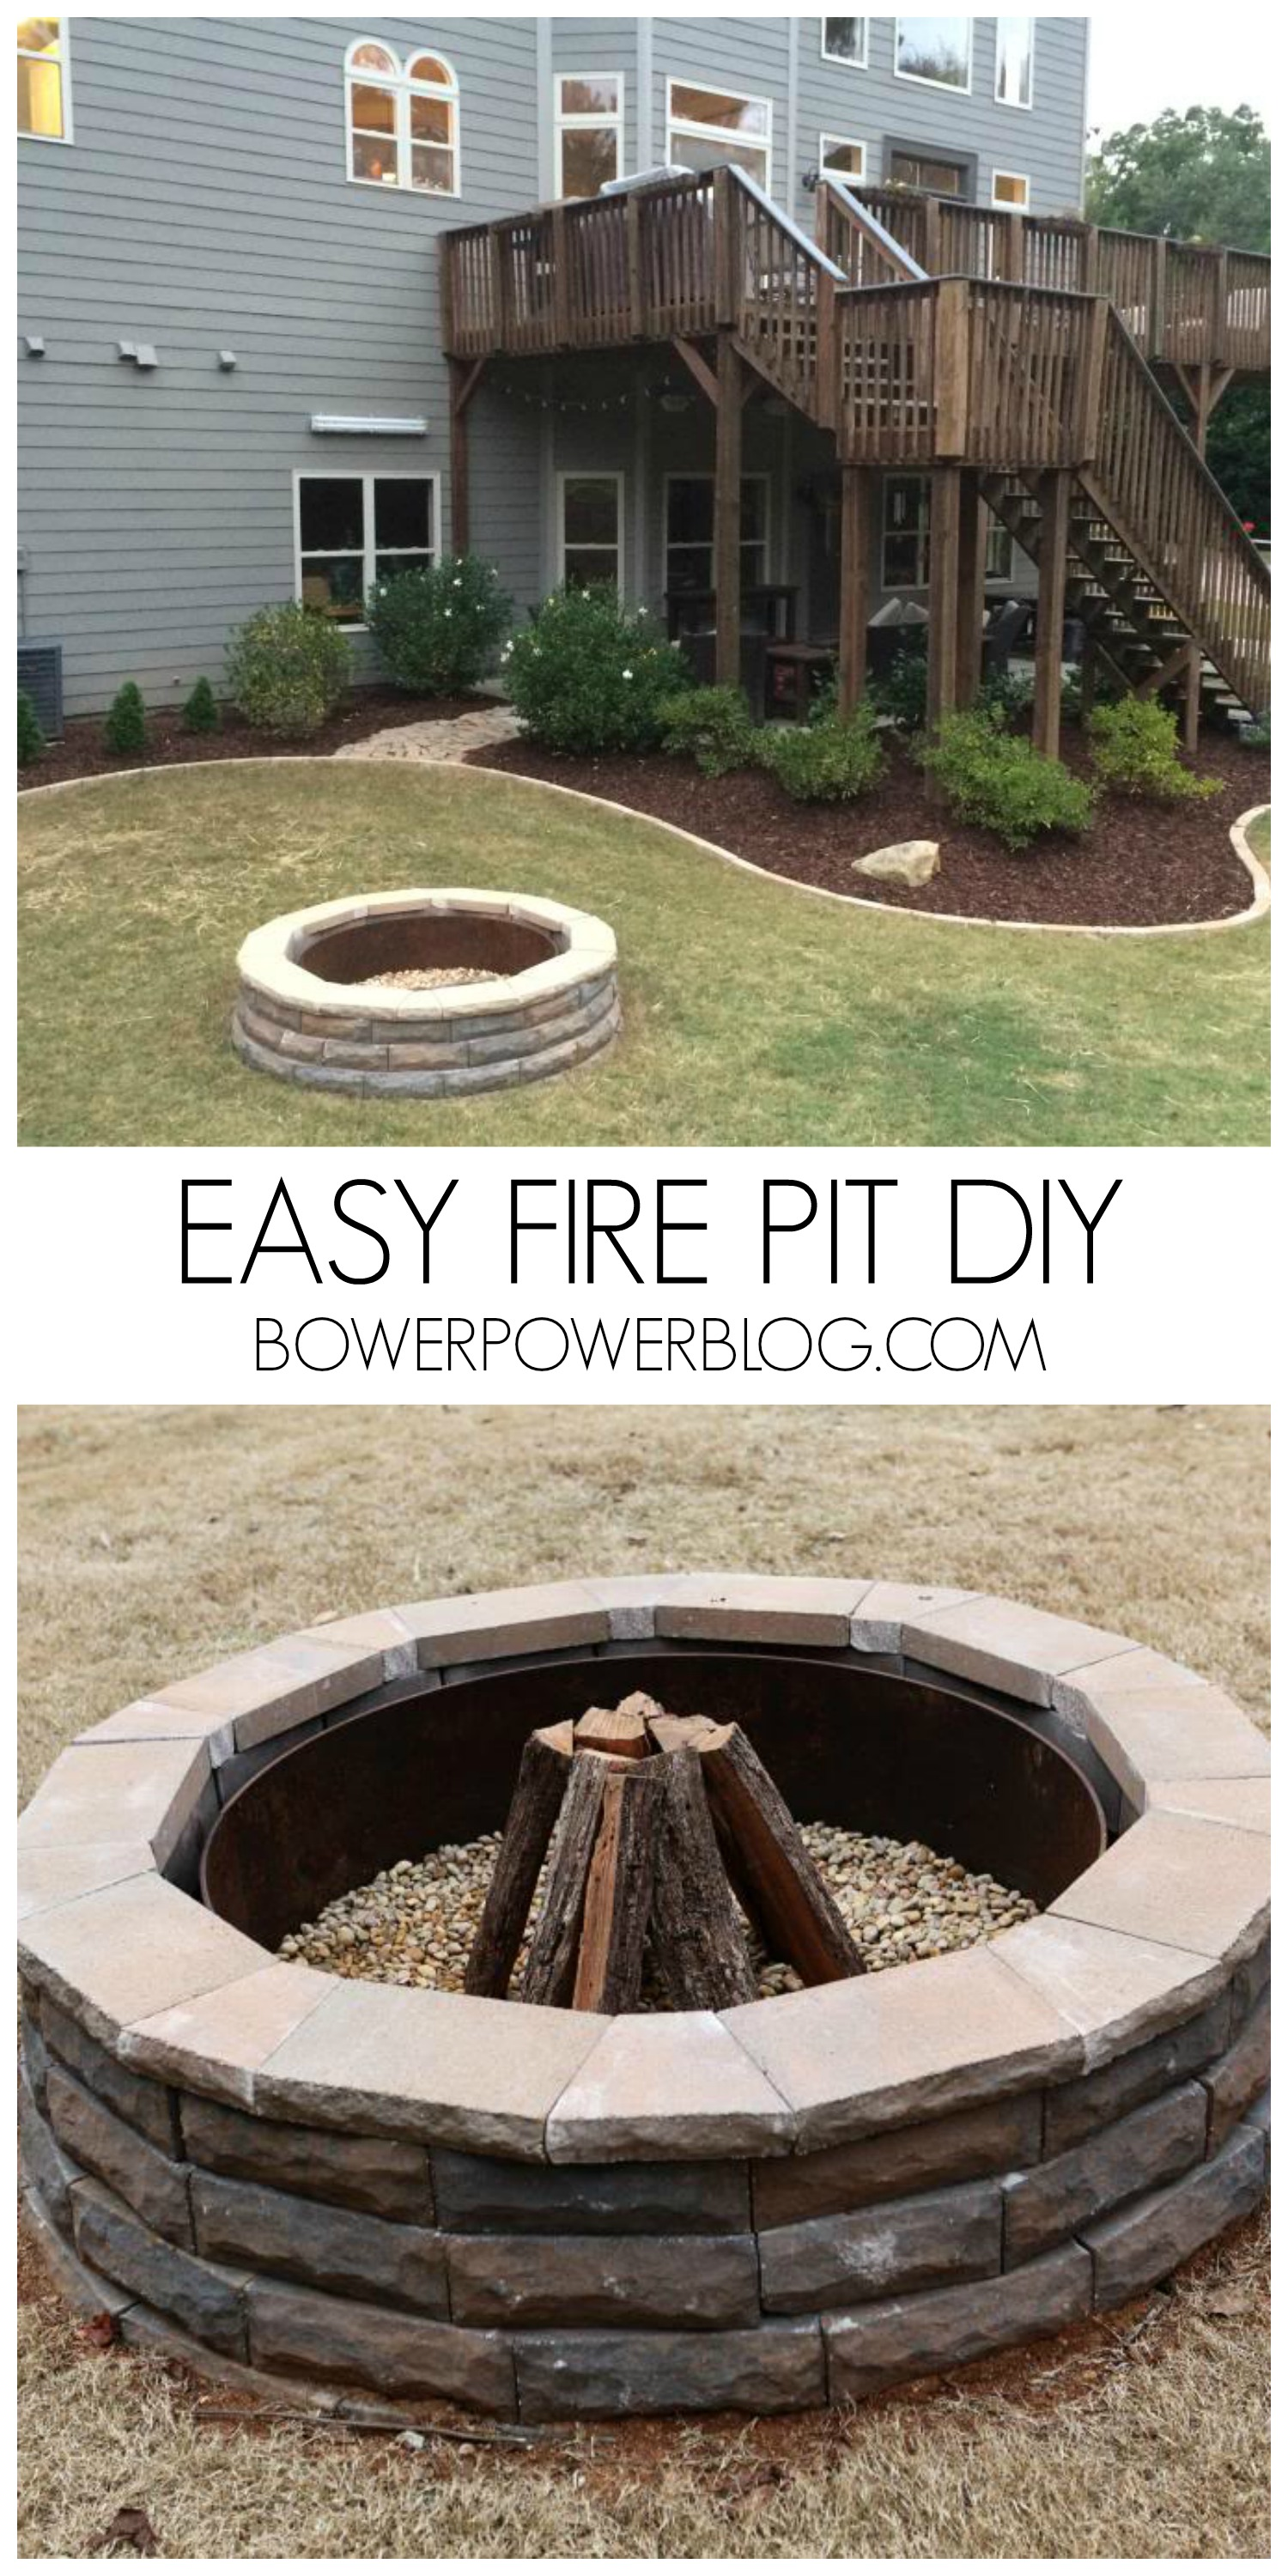 15 Awesome DIY Fire Pit Projects Your Garden Needs For The Summer